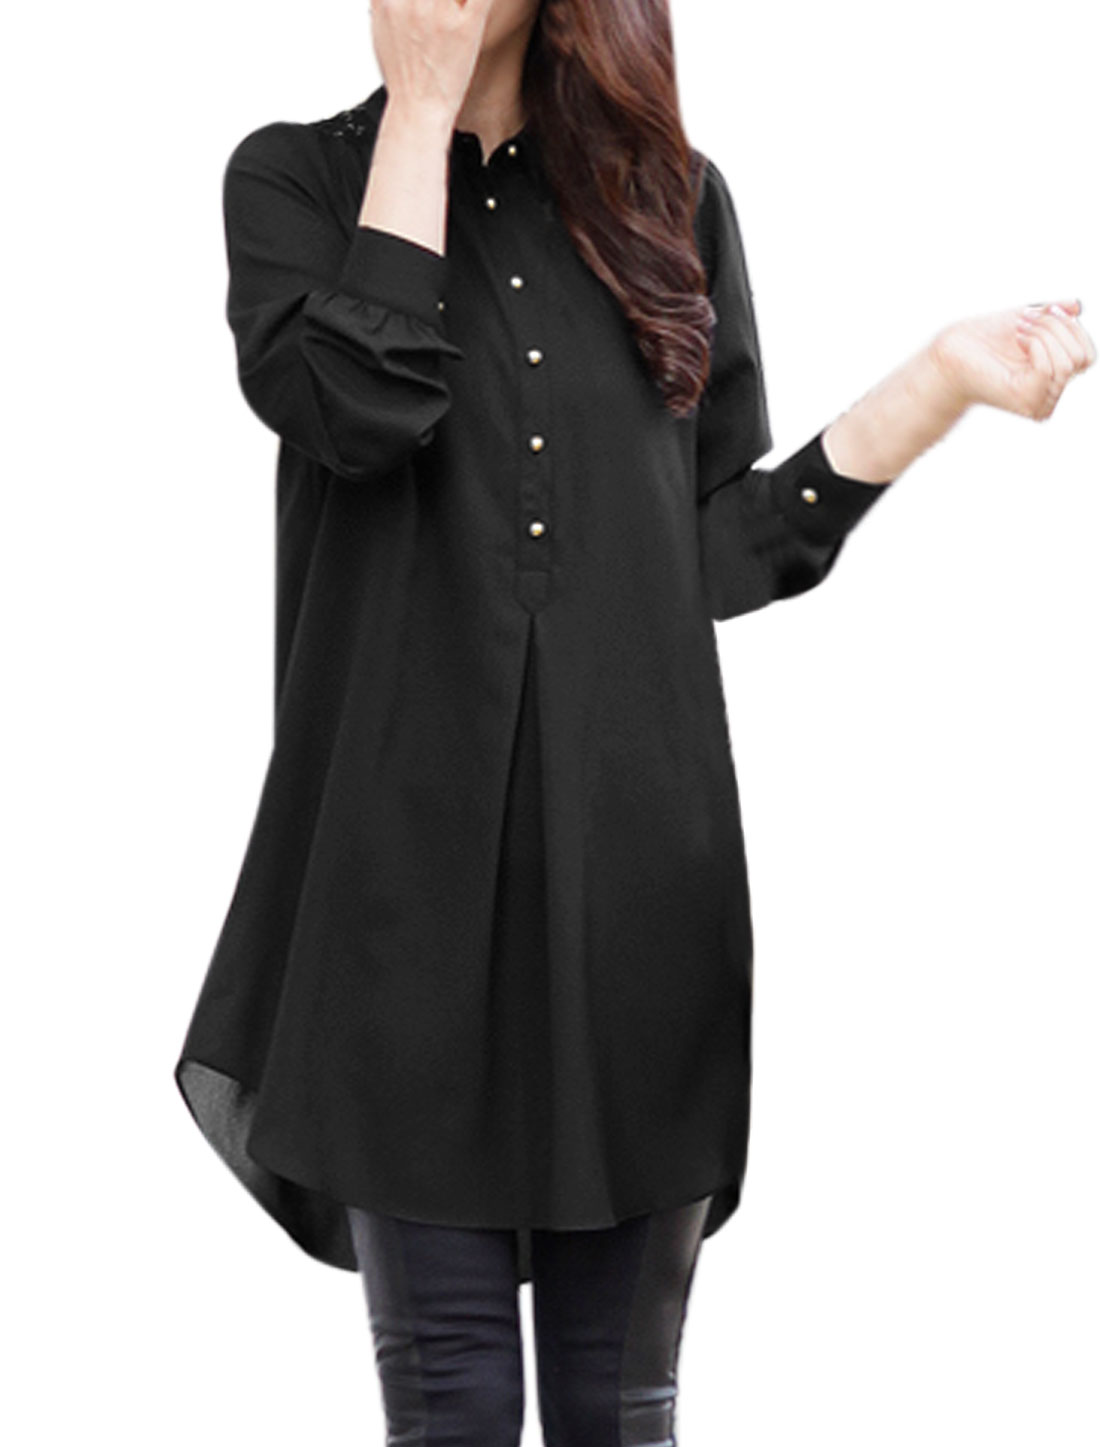 Women Collared Loose Half Button Closed Tunic Top Black M